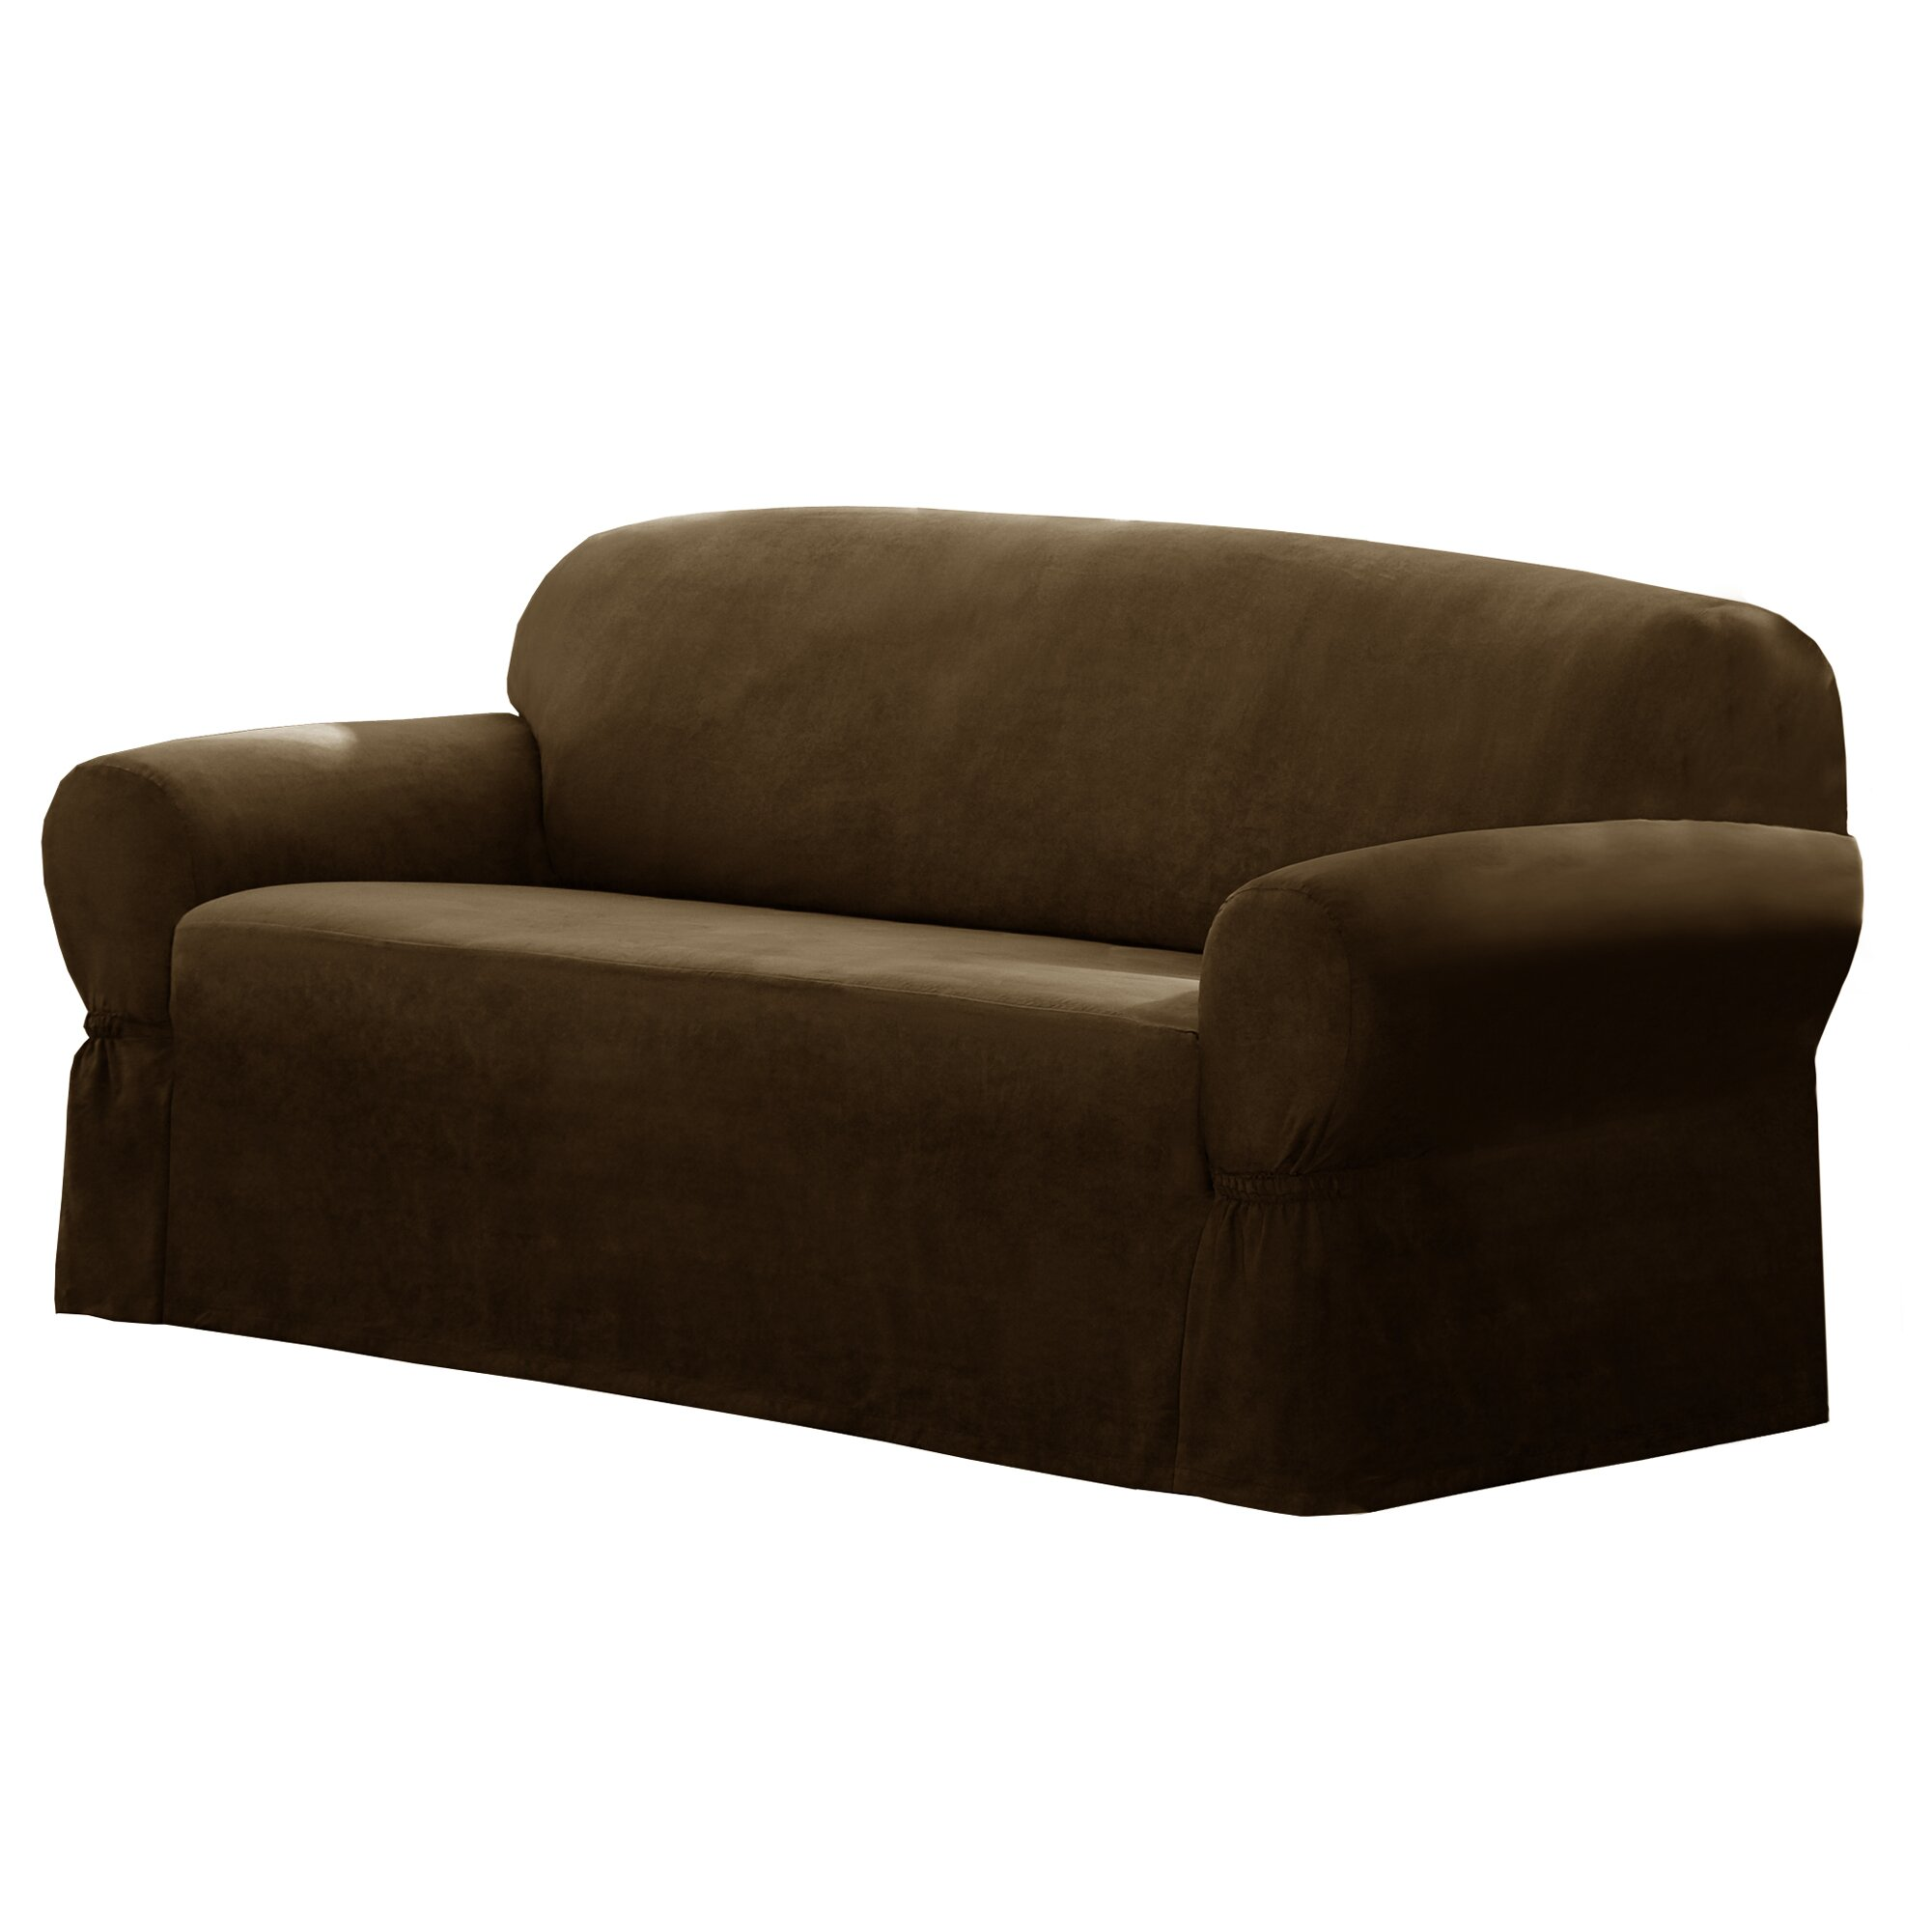 Slipcover Sofa Set: Maytex T-Cushion Loveseat/Sofa Slipcover & Reviews